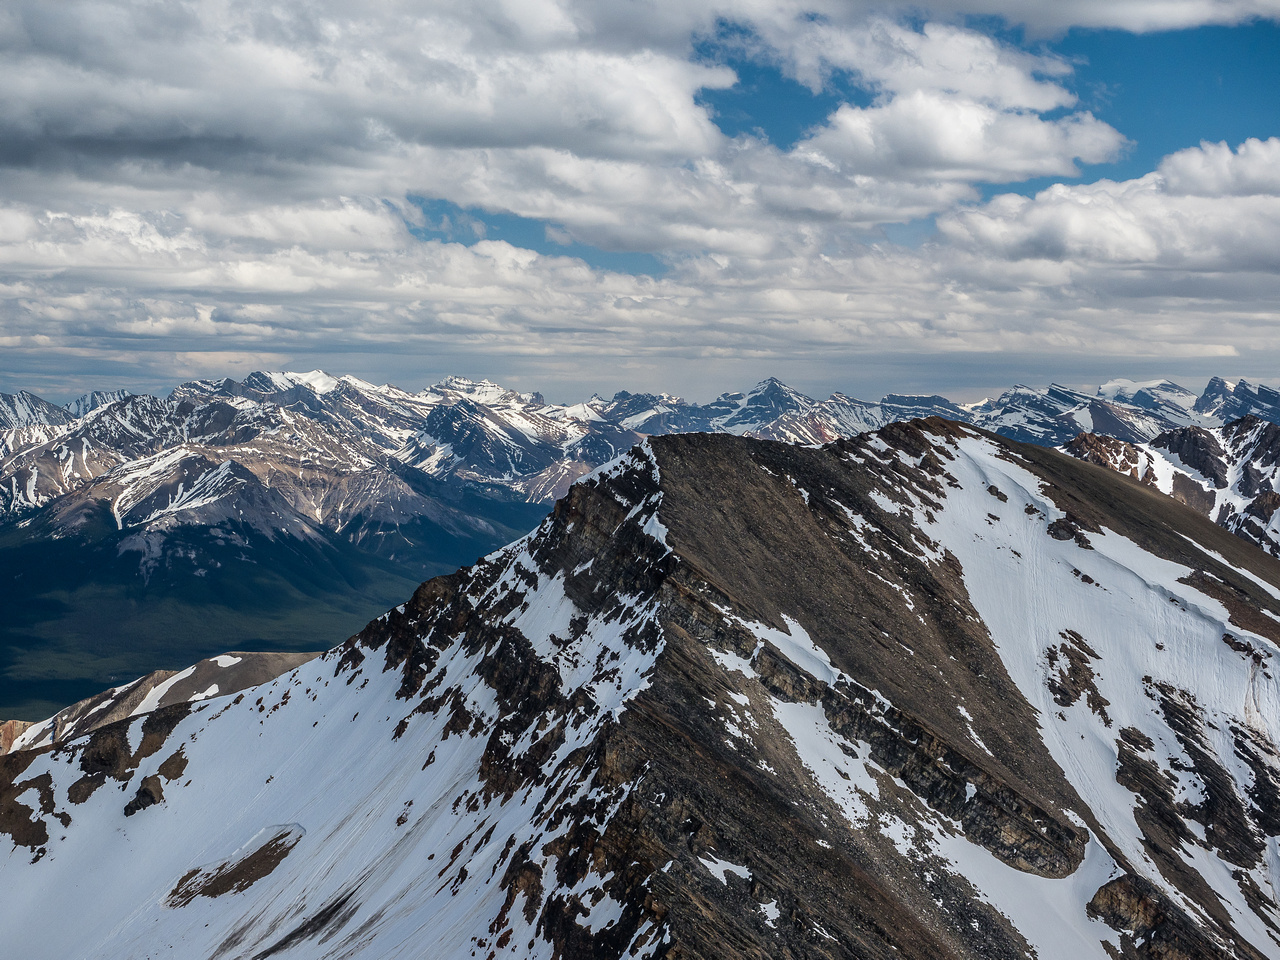 Looking over our next peak (Two O'Clock) towards the Siffleur Wilderness Area.